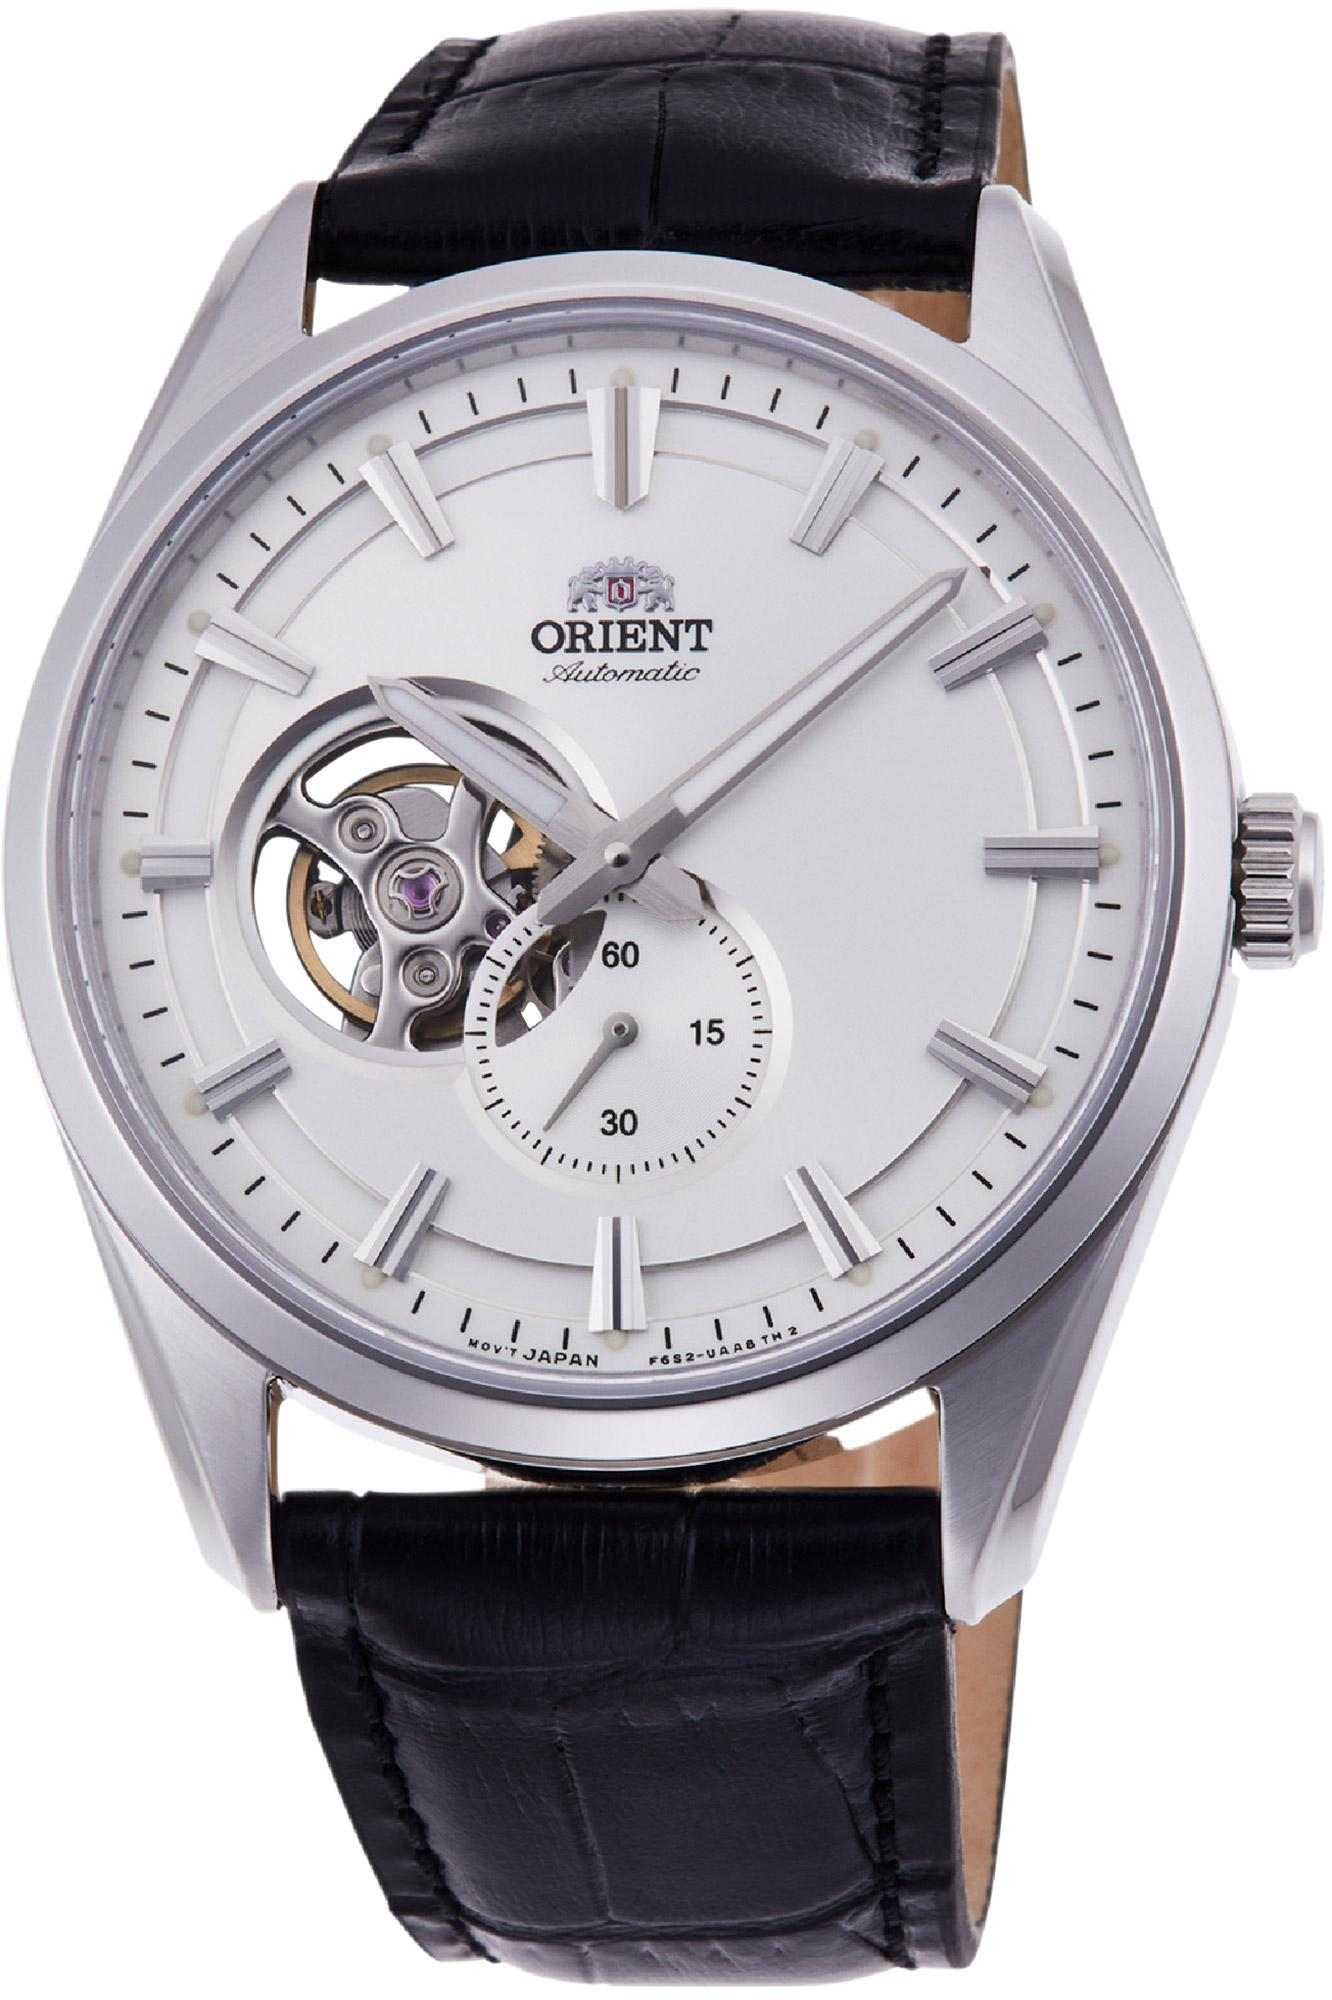 Orient Jam Tangan Pria Orient Contemporary RA AR0004S10B Sapphire Automatic Silver White Dial Leather Strap